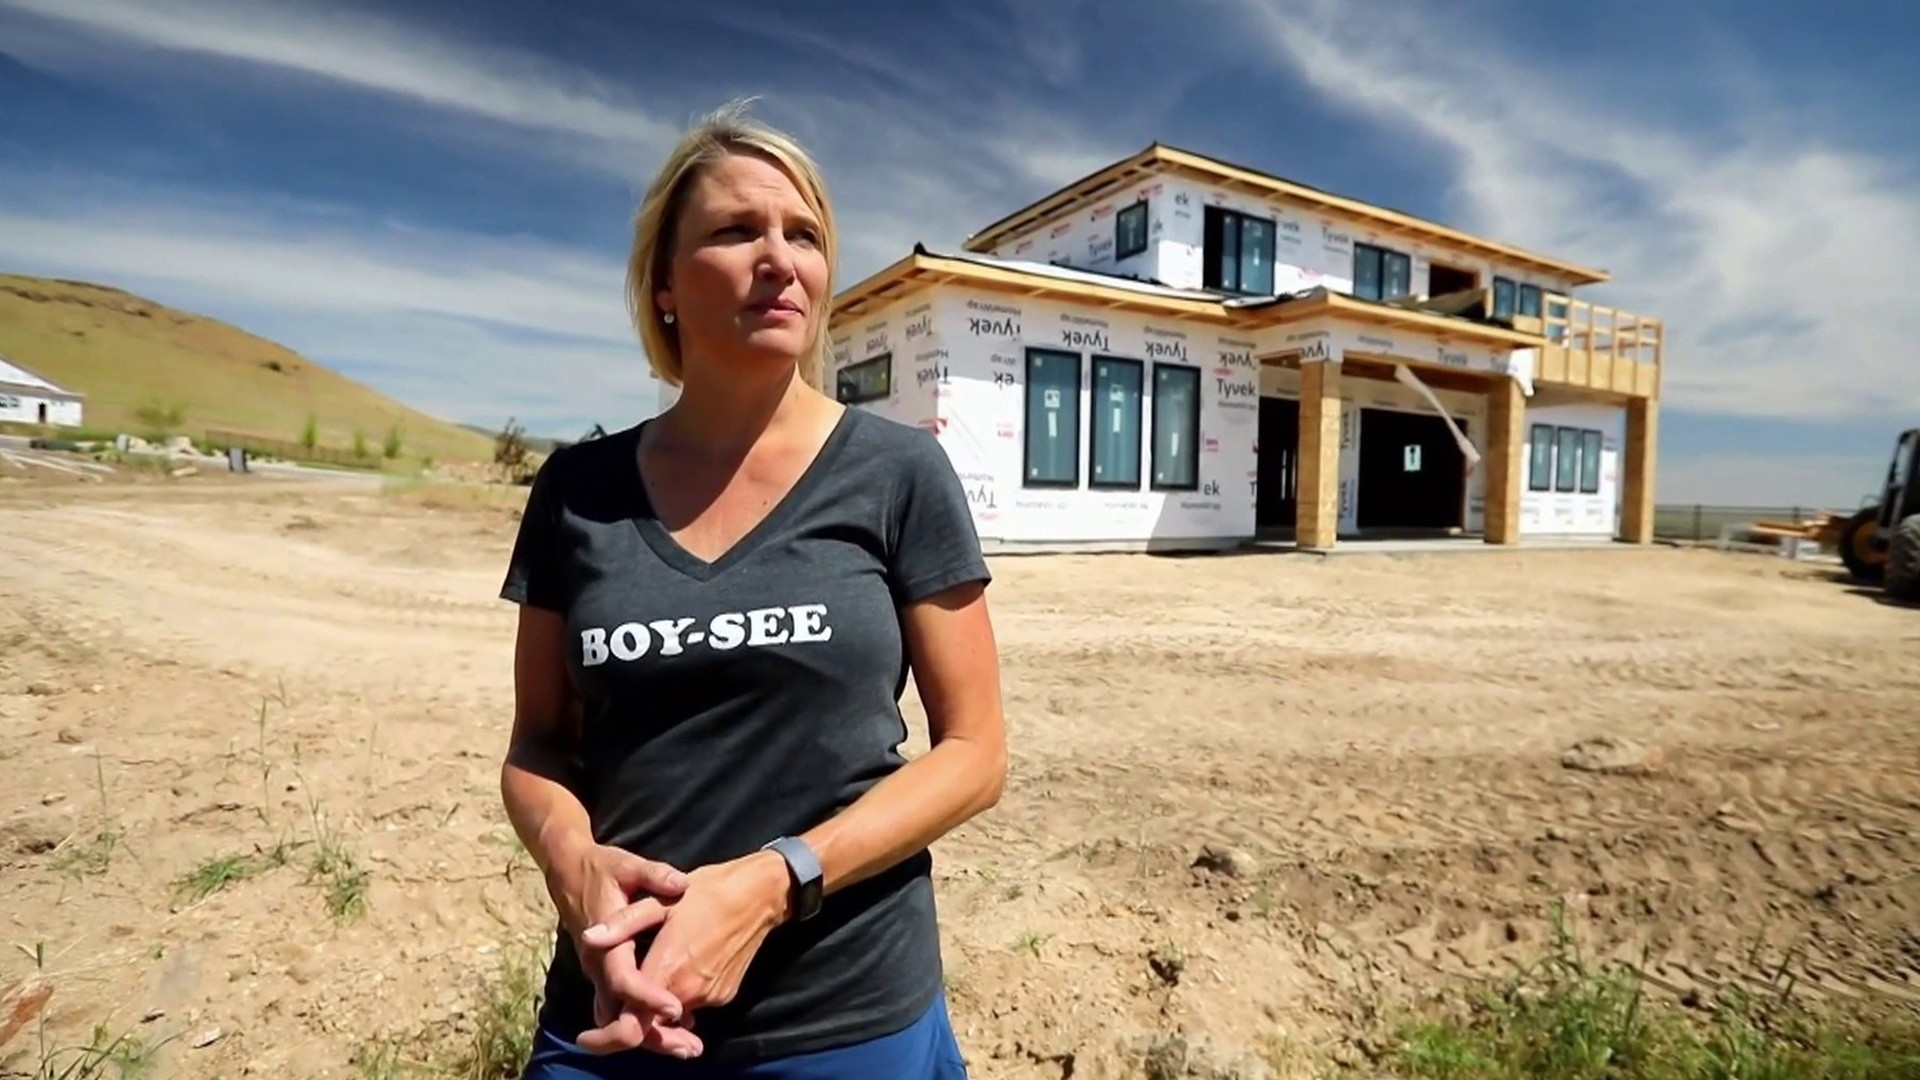 Boise housing market flourishes as people leave cities amid pandemic